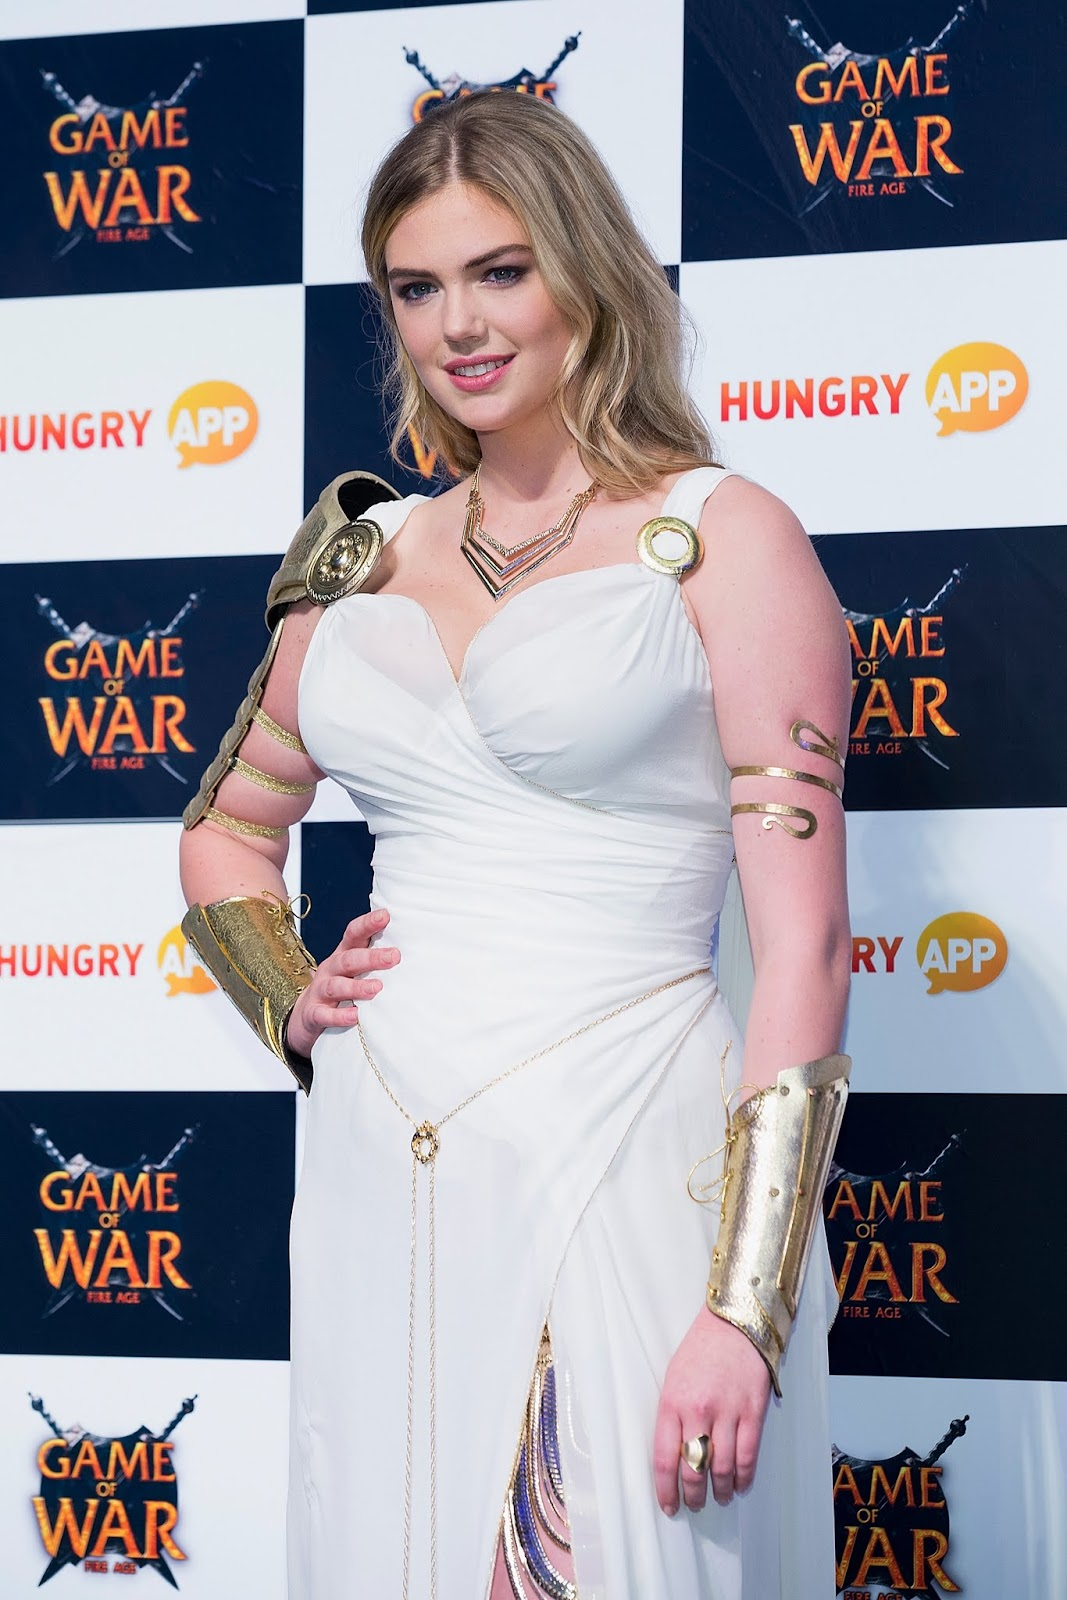 Kate upton game of war fire age promotional event busan south korea 11